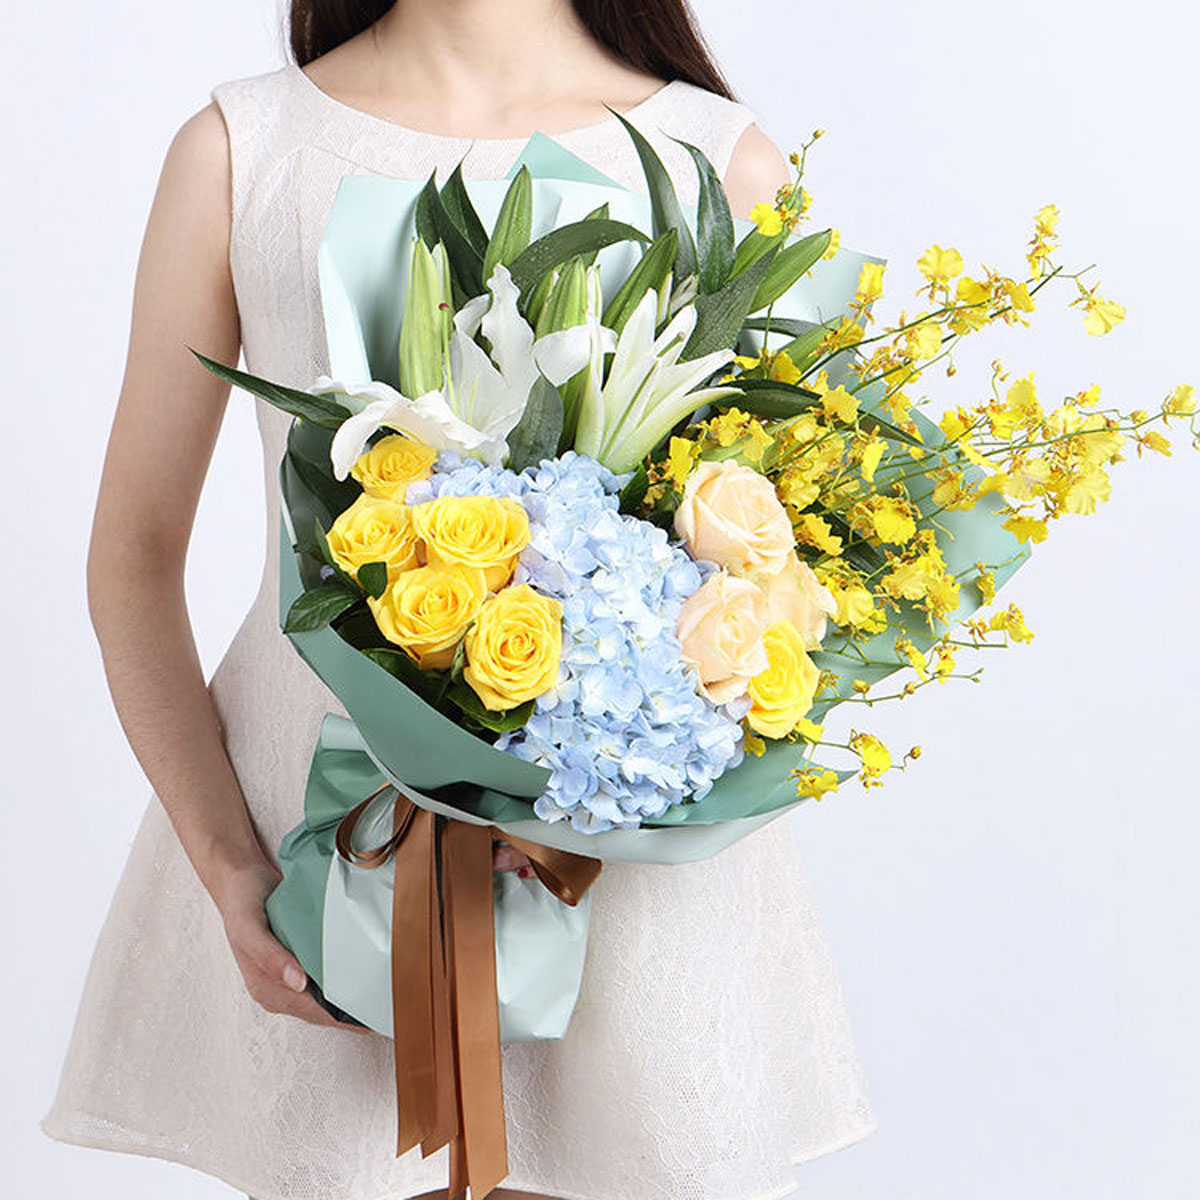 Medium bouquet of hydrangeas, orchids, roses and lilies wrapped in quality matte paper